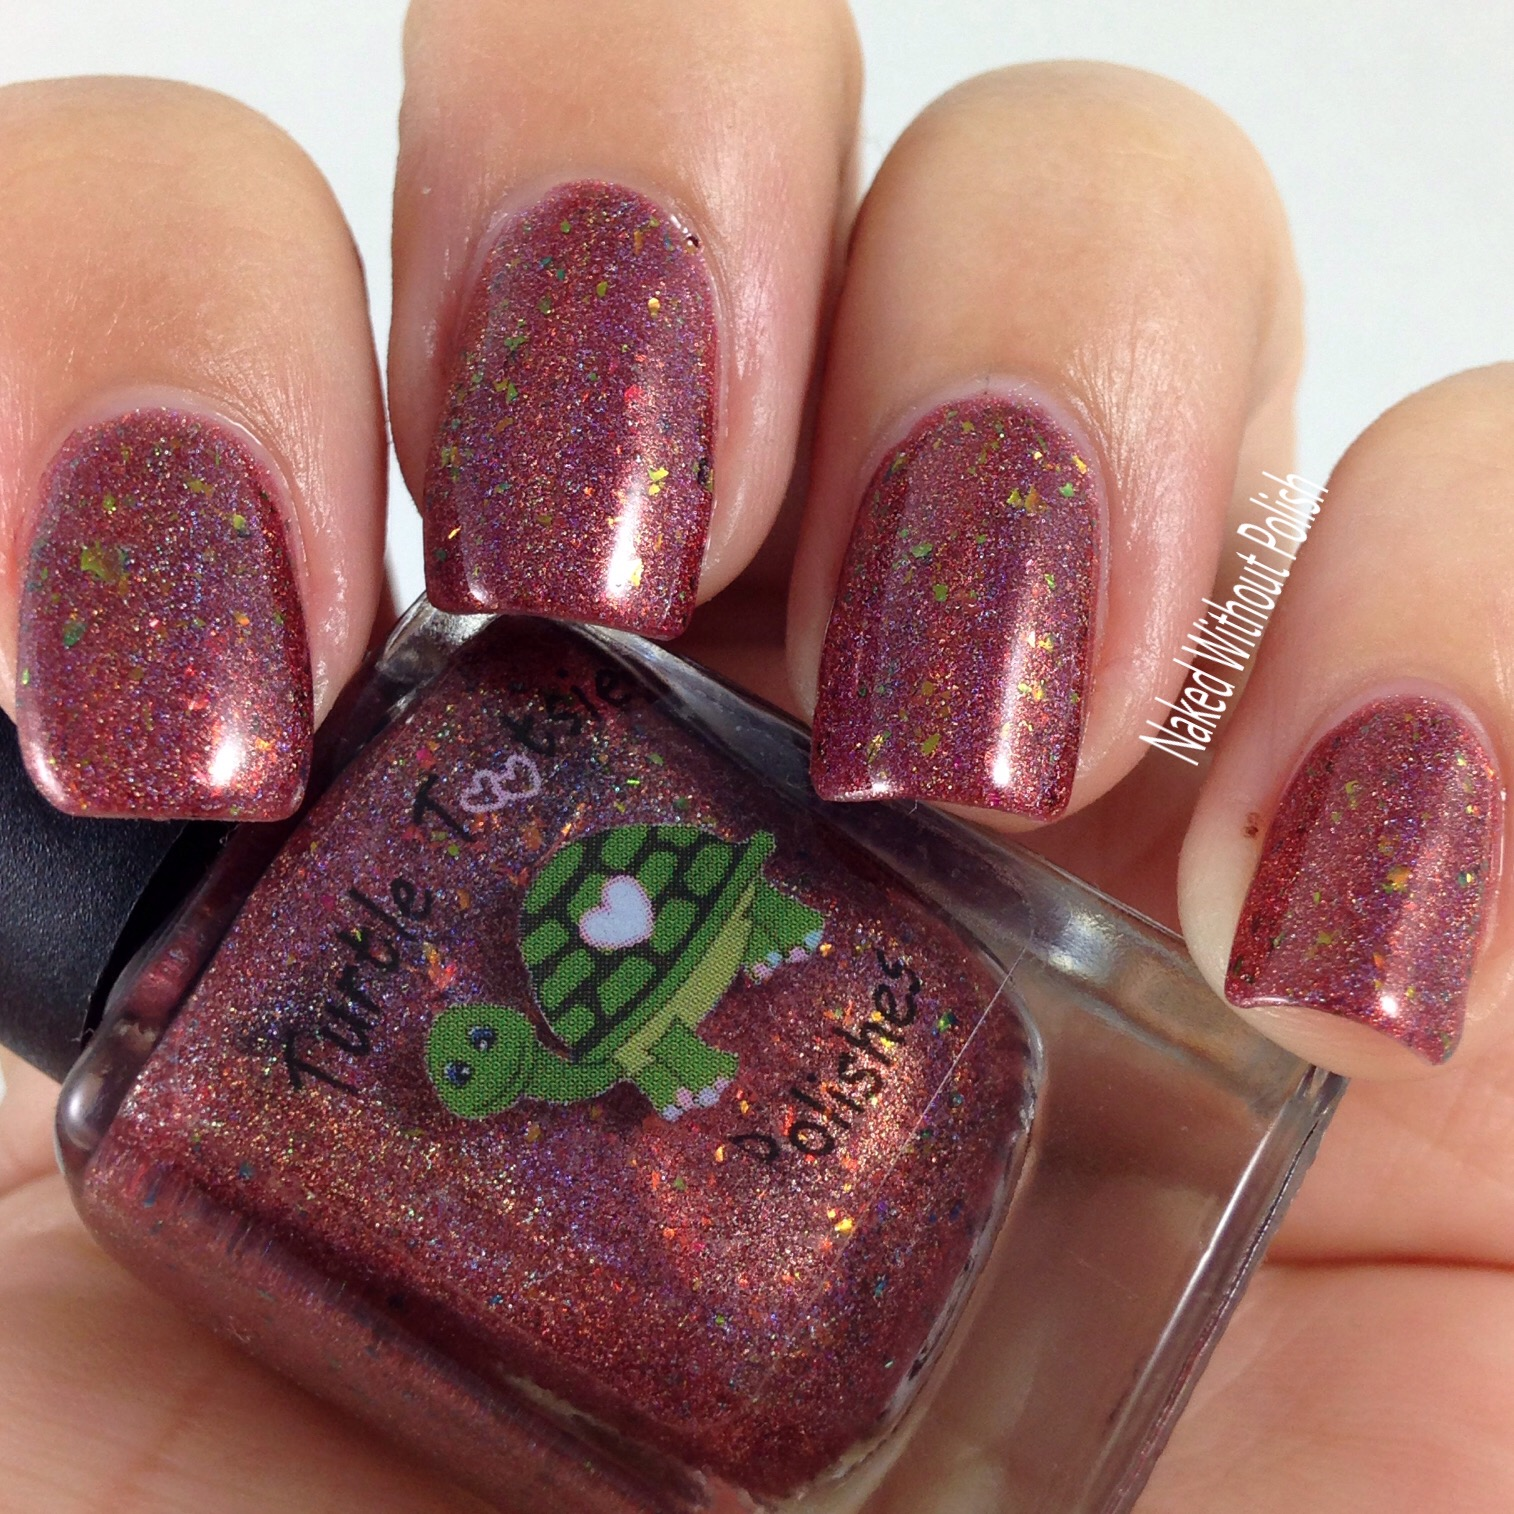 Polish-Pickup-Turtle-Tootsie-Polishes-Just-Around-the-Bend-6